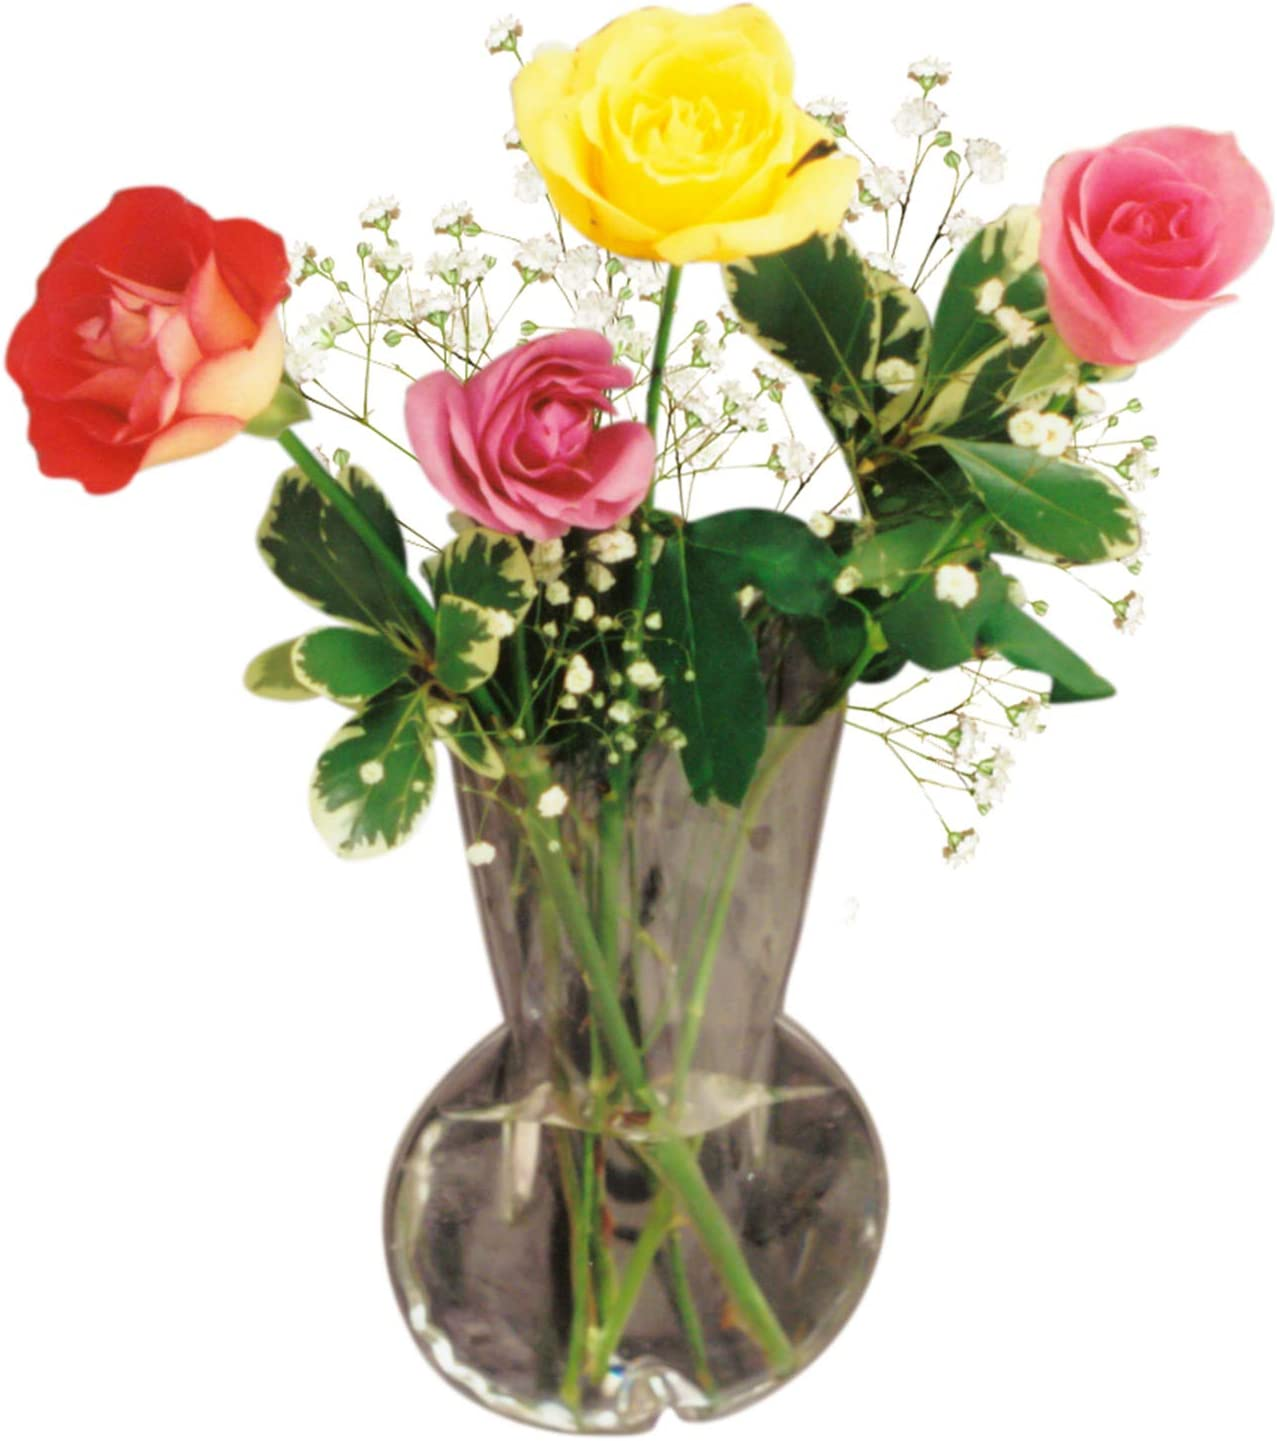 Gadjit Vinyl Window Vase Bulb Style -- Suctions to Windows and Mirrors, Holds Bouquet of Flower Stems, Greenery and Water, Clear Flexible Vinyl